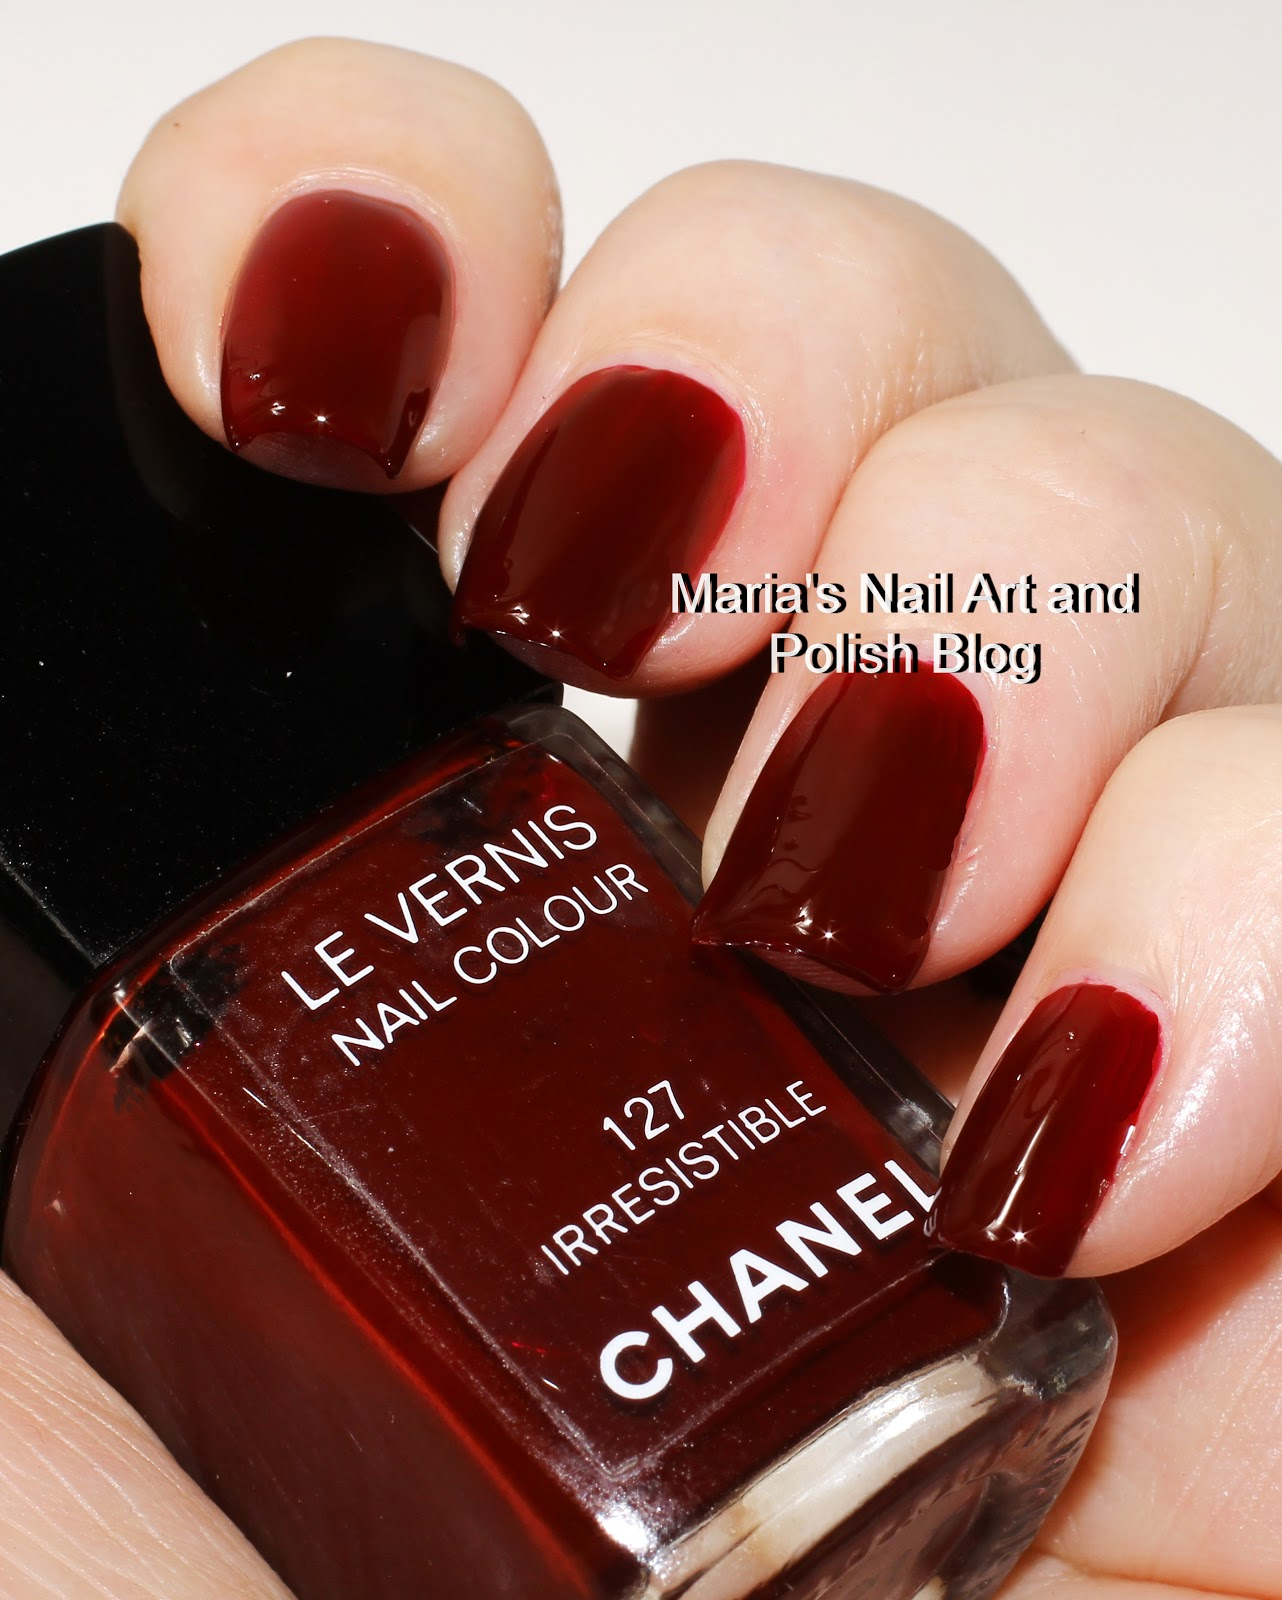 Marias Nail Art and Polish Blog: Chanel Irresistible 127 US vers ...